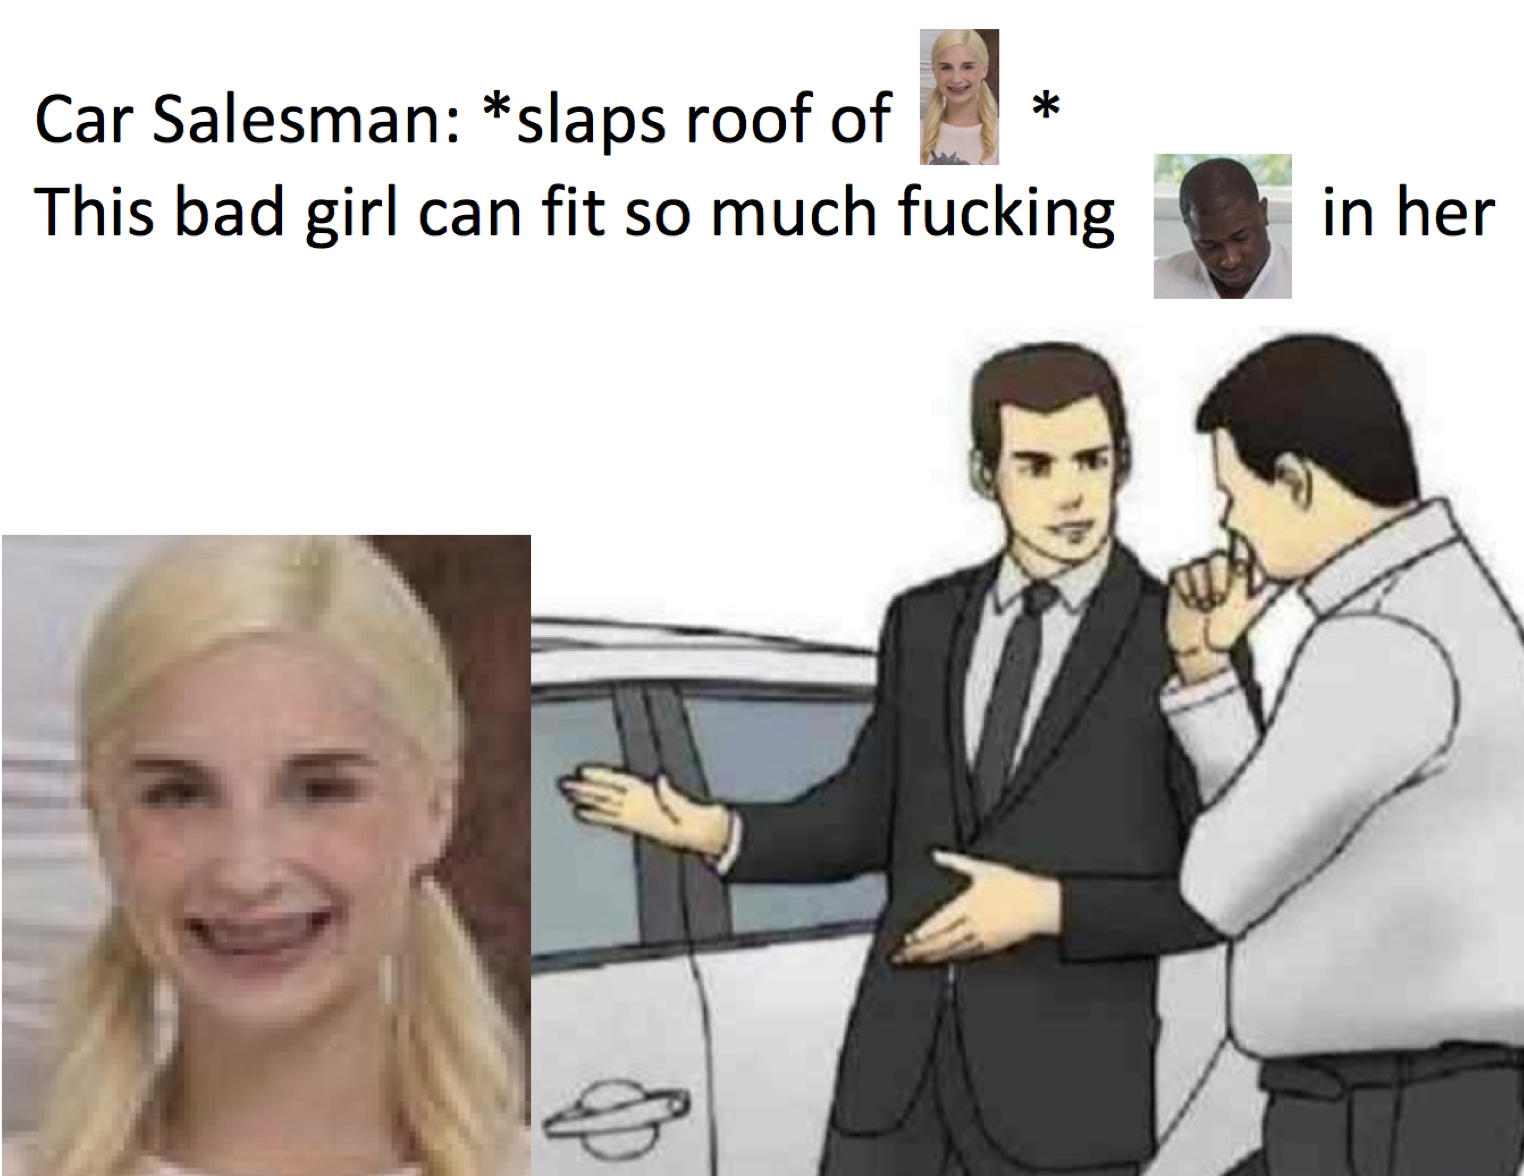 Car salesman slaps roof of this bad girl can fit so much fucking